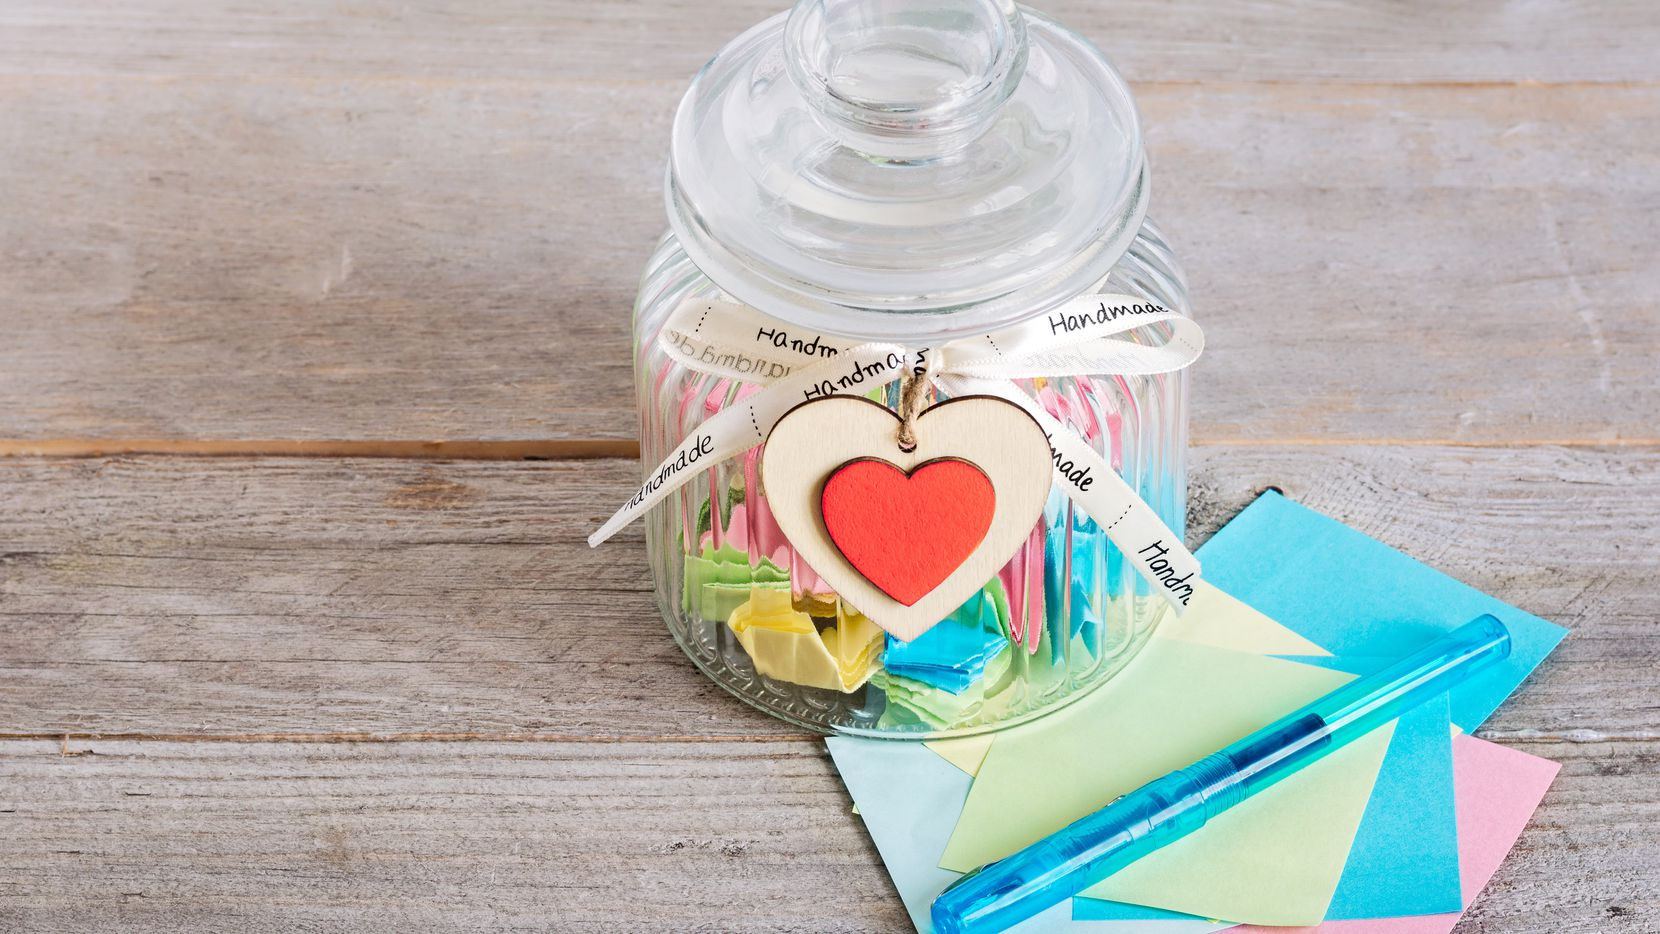 Practice the art of gratitude and boost your well-being with a happiness jar. The concept is simple: At the end of the day, every day, grab a scrap of paper and jot down the day's happiest moment.